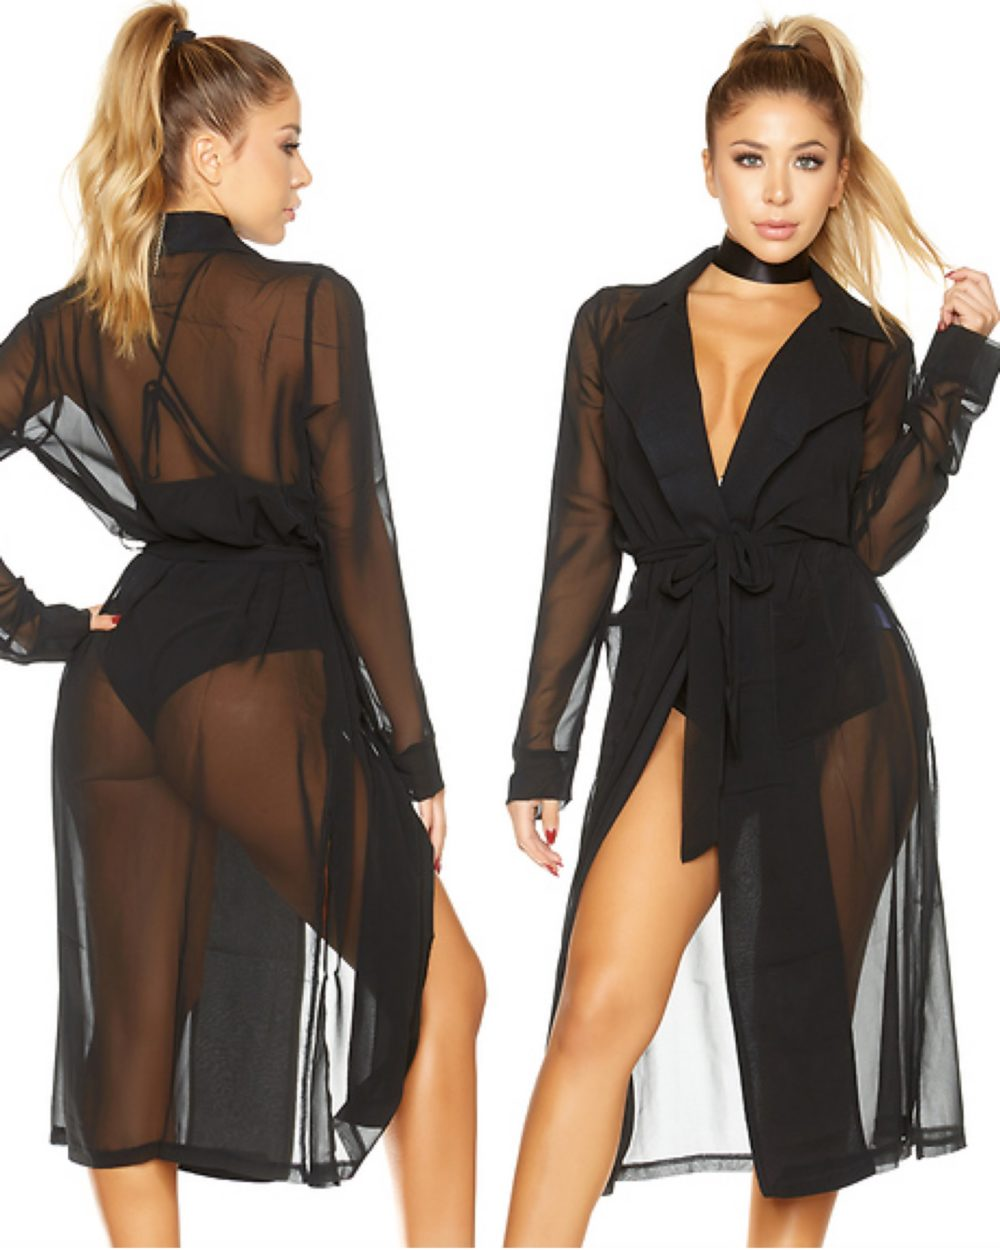 99092666756e5 13 lingerie outfits that Mariah Carey would totally approve of if ...